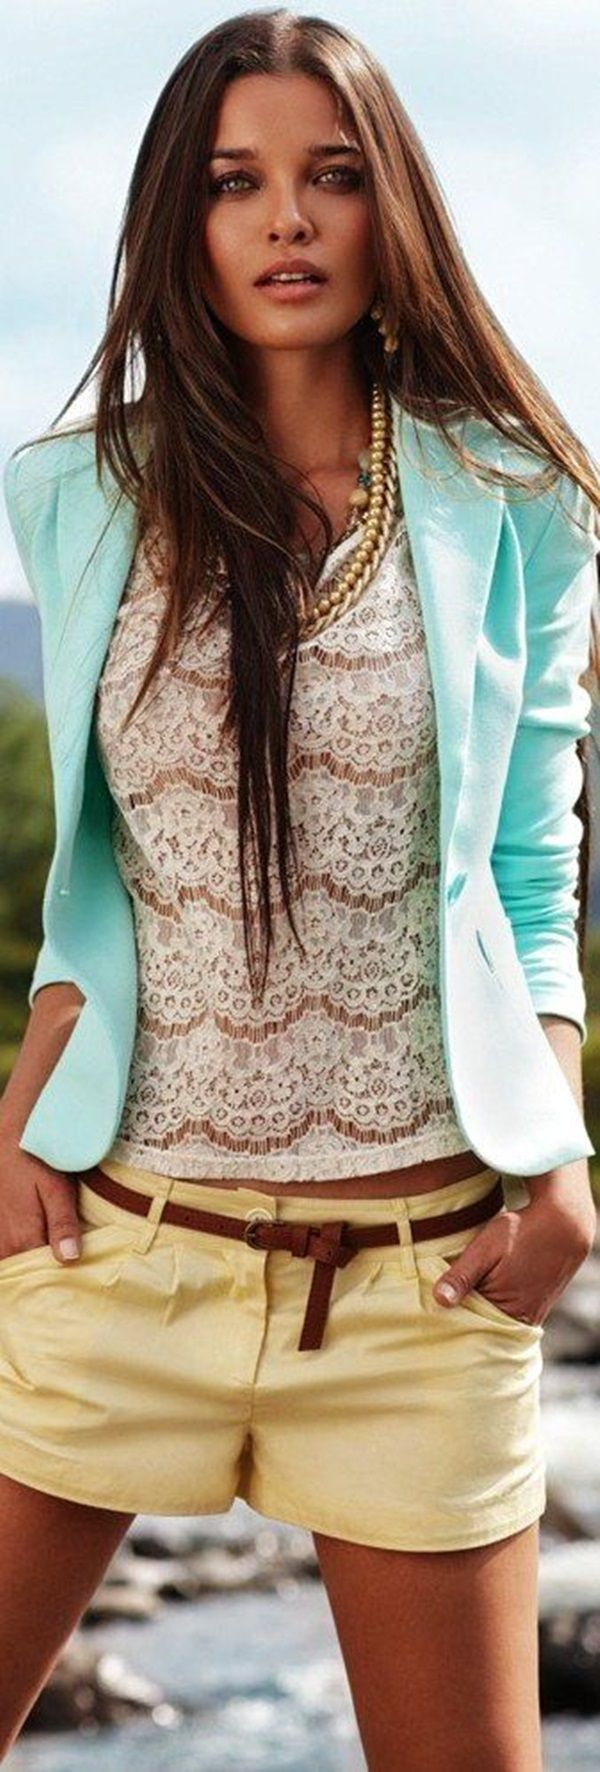 summer outfits womens fashion clothes style apparel clothing closet ideas lace blouse cyan jacket yellow shorts